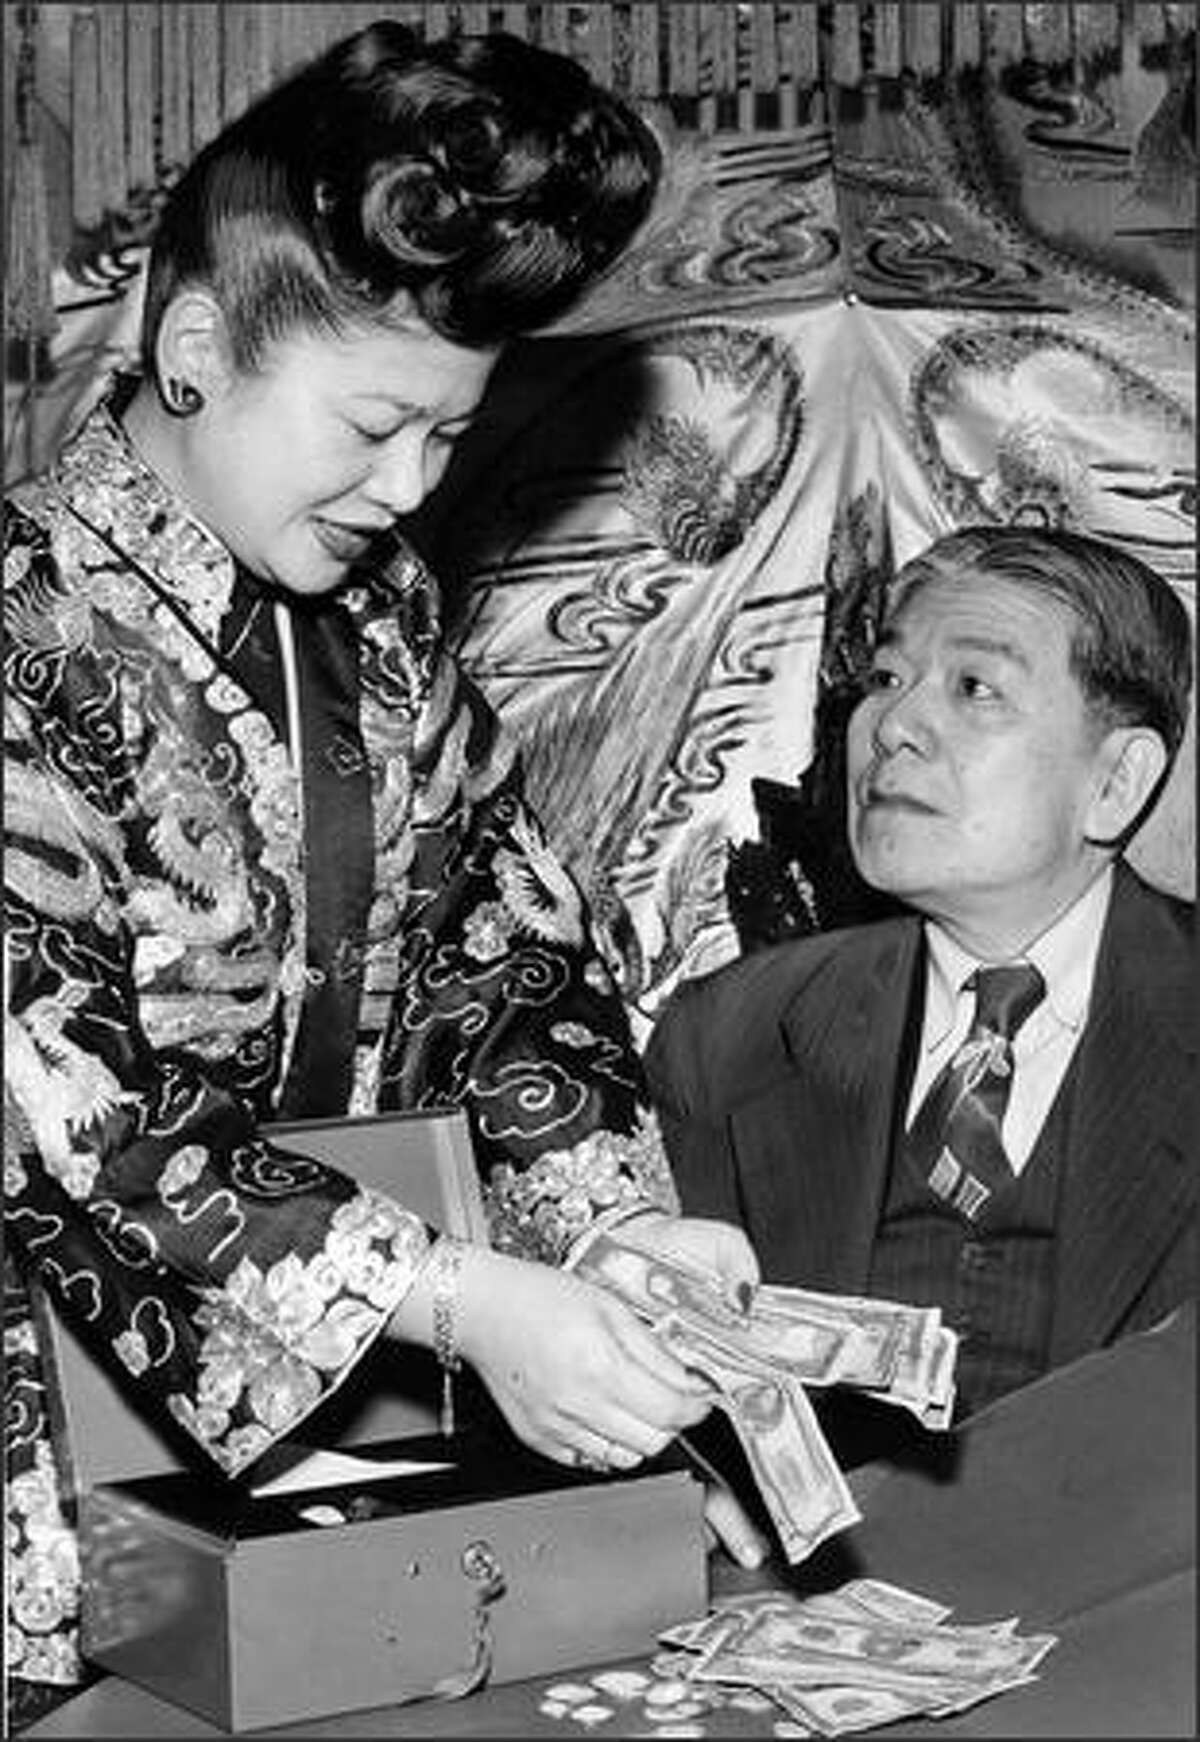 12/10/1949 - Ruby Chow owner of Ruby Chow's Restaurant and Jackman Chin, vice presidnt of the Chinese Benevolent Association, happily count out Chinatown's contribution to the Seattle Post-Intelligencer Christmas Fund.